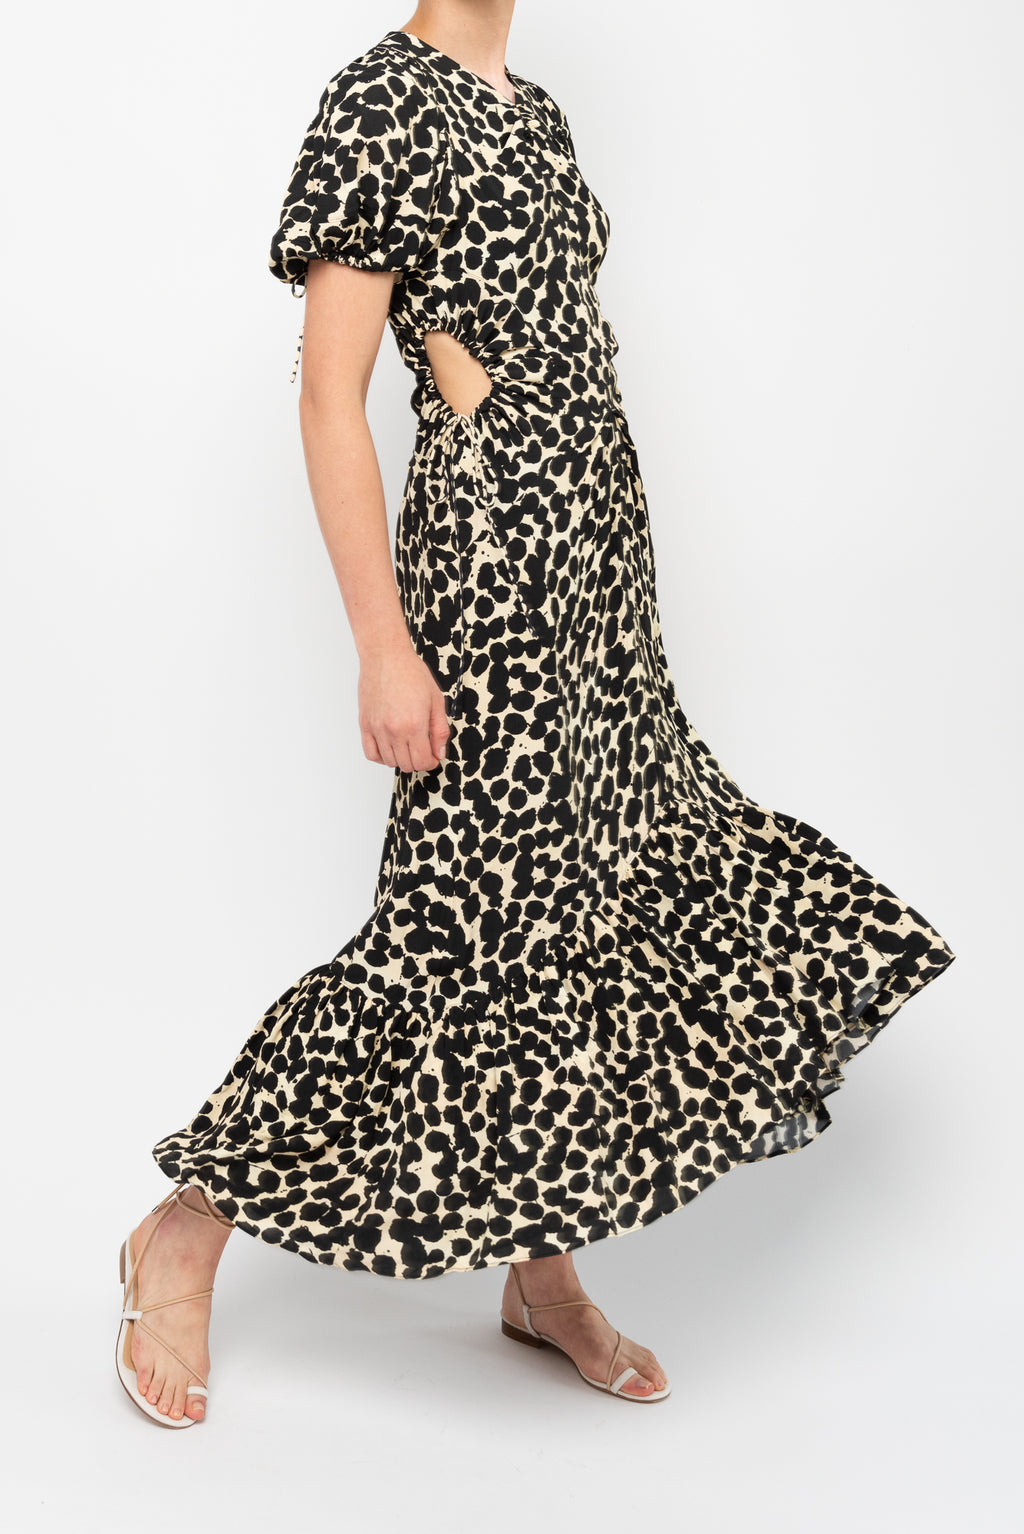 Printed Cinched Dress